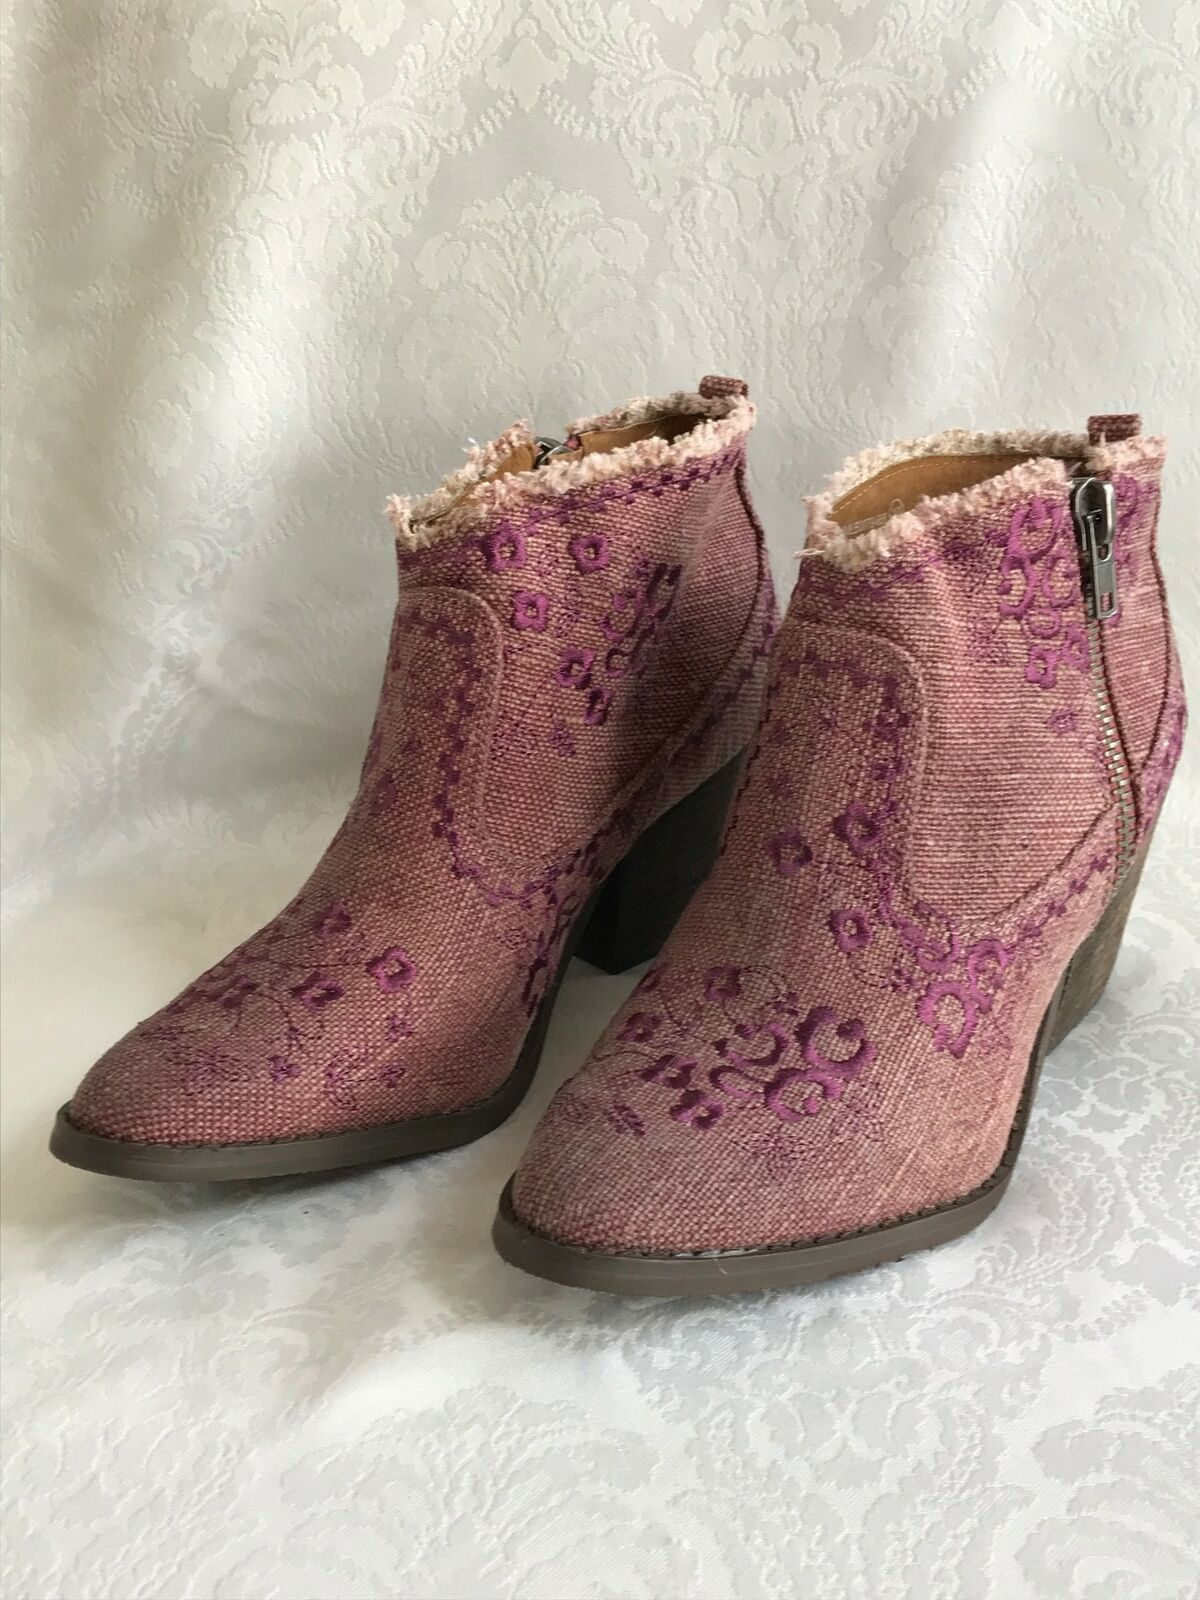 Naughty Monkey Women's Sewn up Textured Fabric Ankle Bootie PLUM US 10 NEW